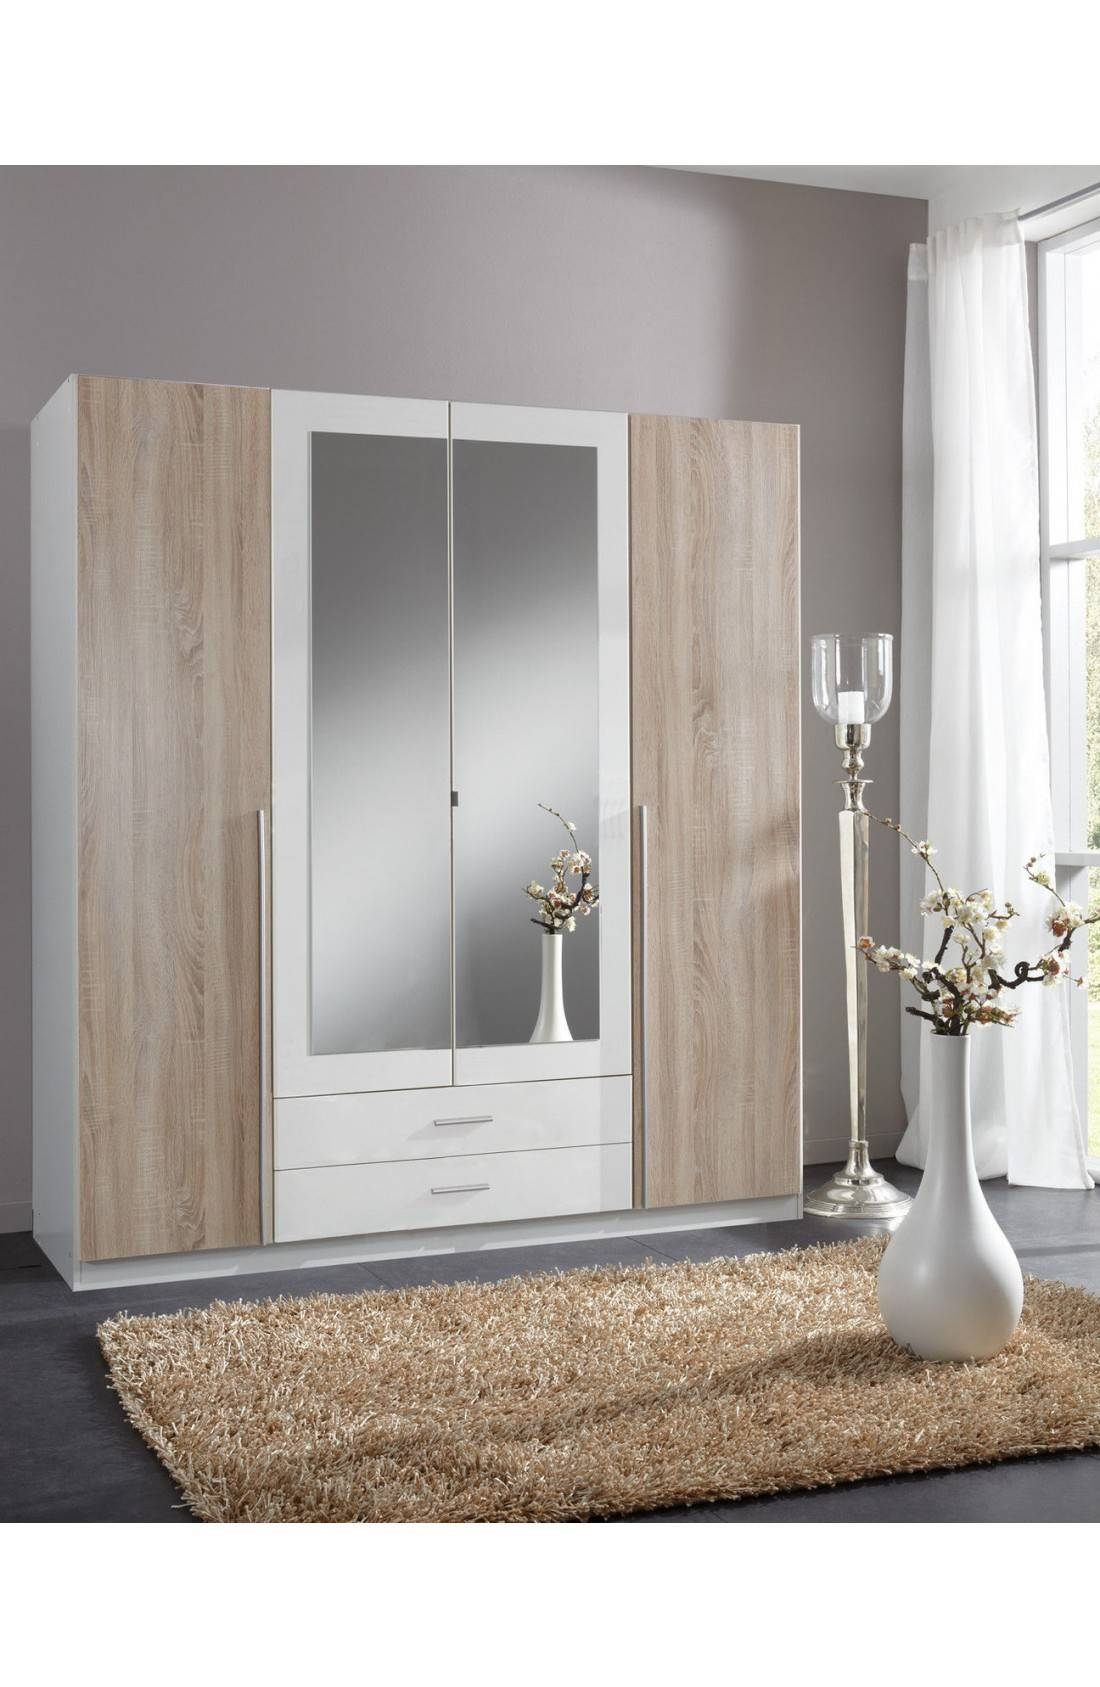 Slumberhaus 'skate' German Made Modern Alpine White, Oak And intended for Oak and White Wardrobes (Image 15 of 15)